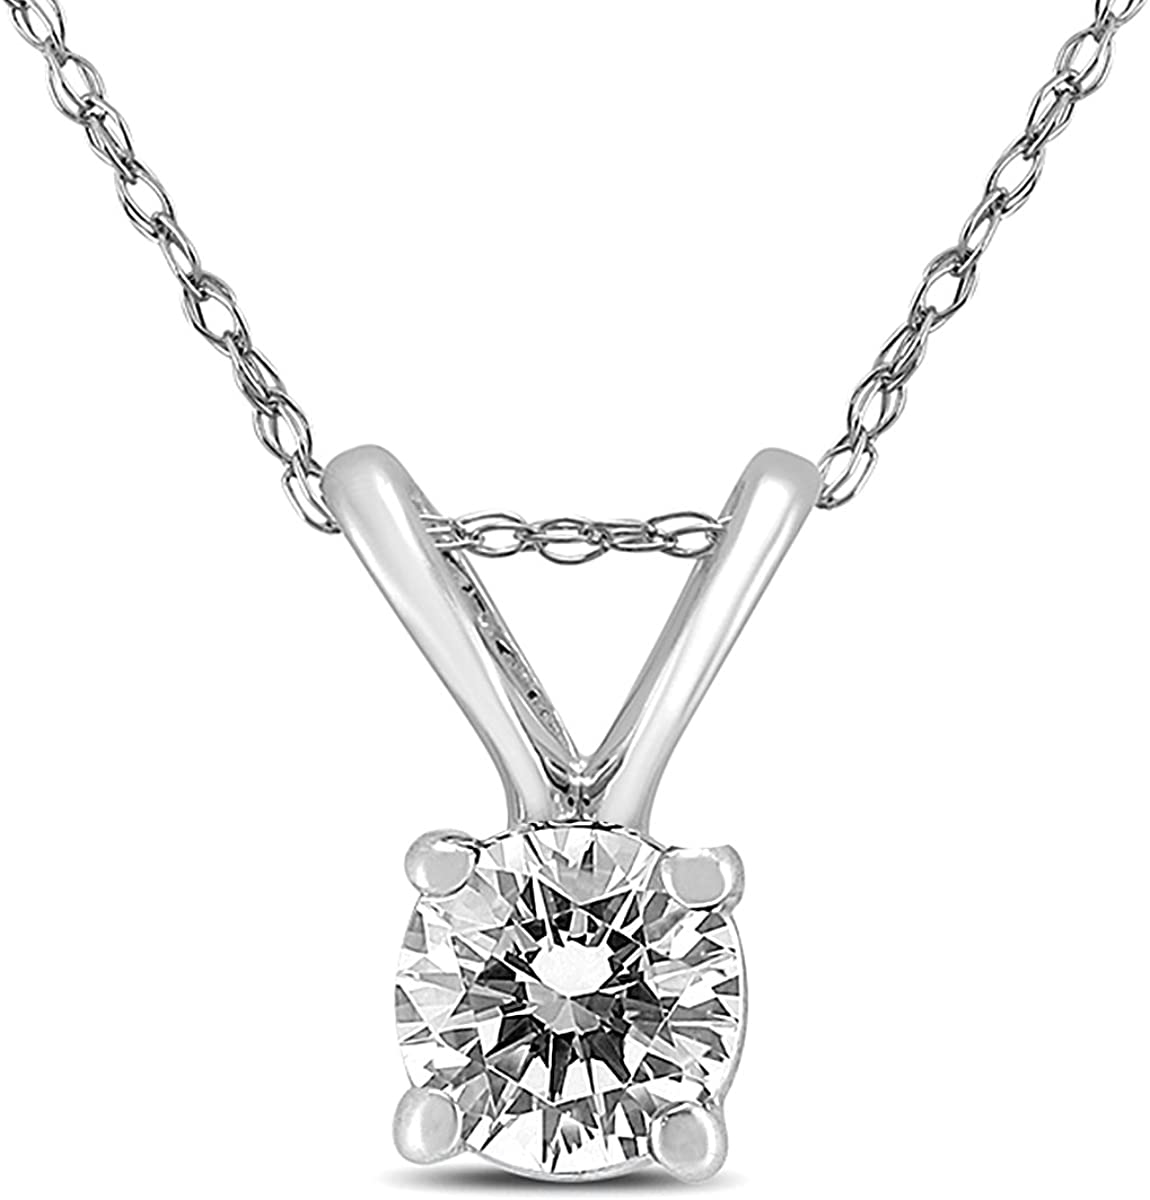 14K Beauty products White Gold 1 4 Pendant Max 44% OFF Diamond Carat Solitaire